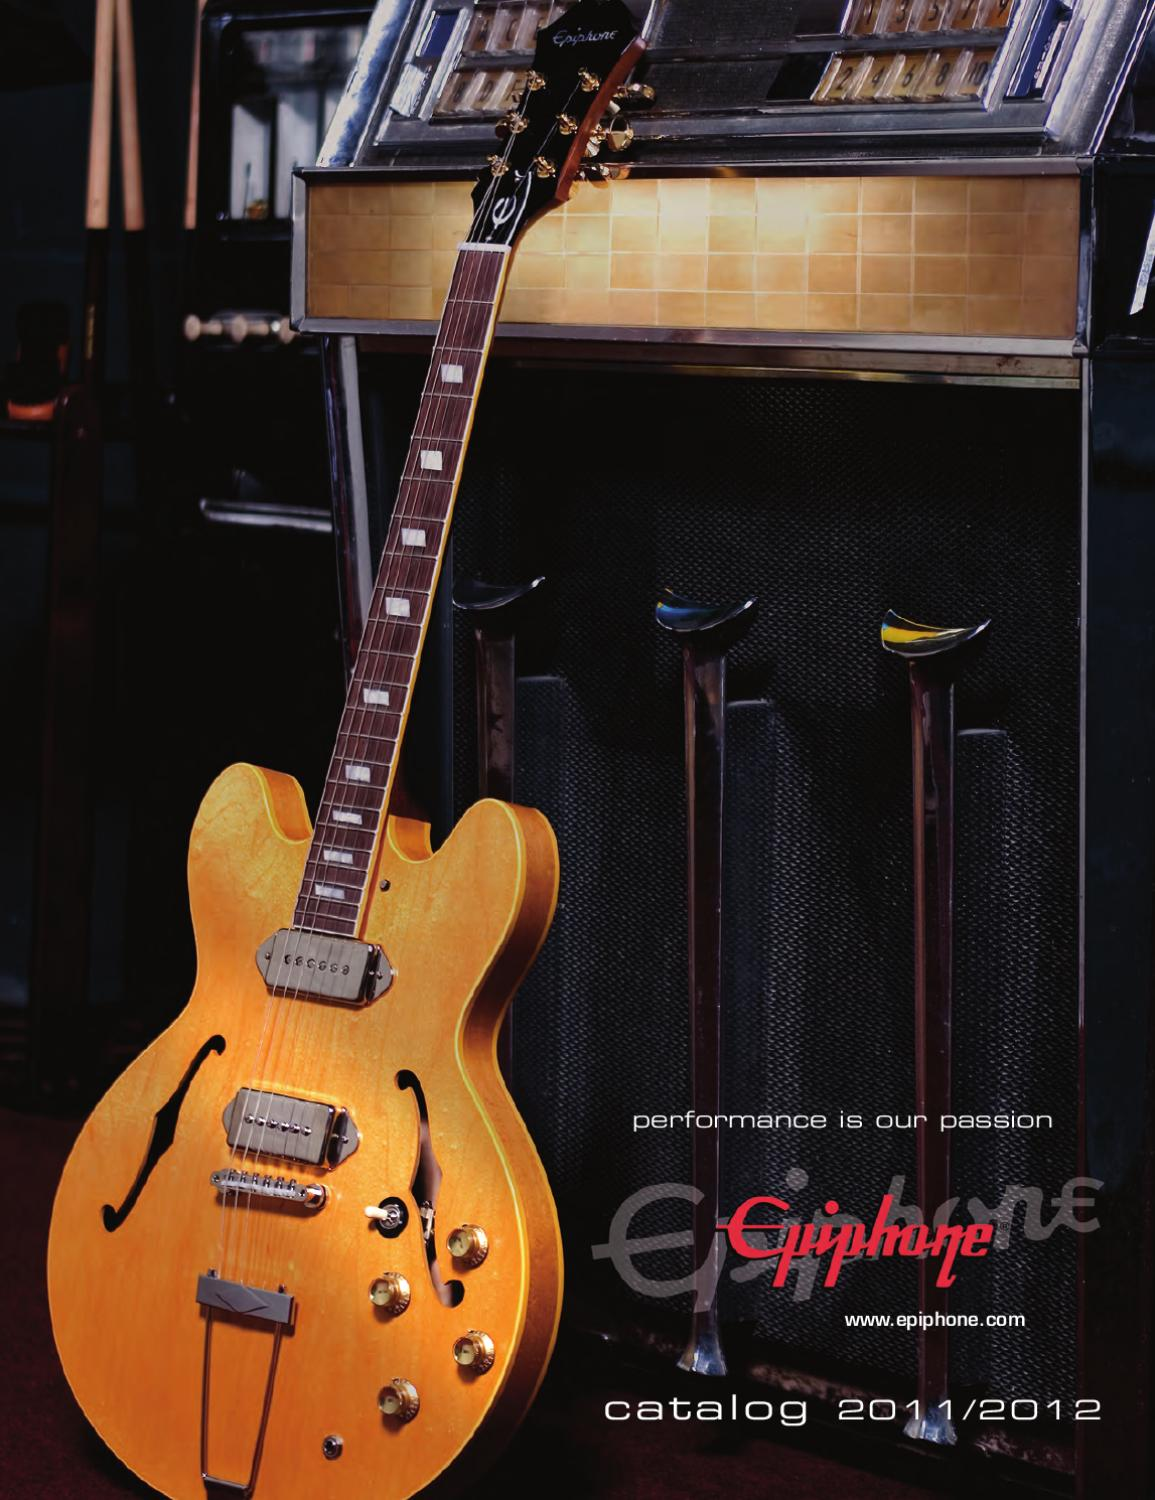 epiphone guitars available from ziva guitars by suzanne ritter issuu. Black Bedroom Furniture Sets. Home Design Ideas